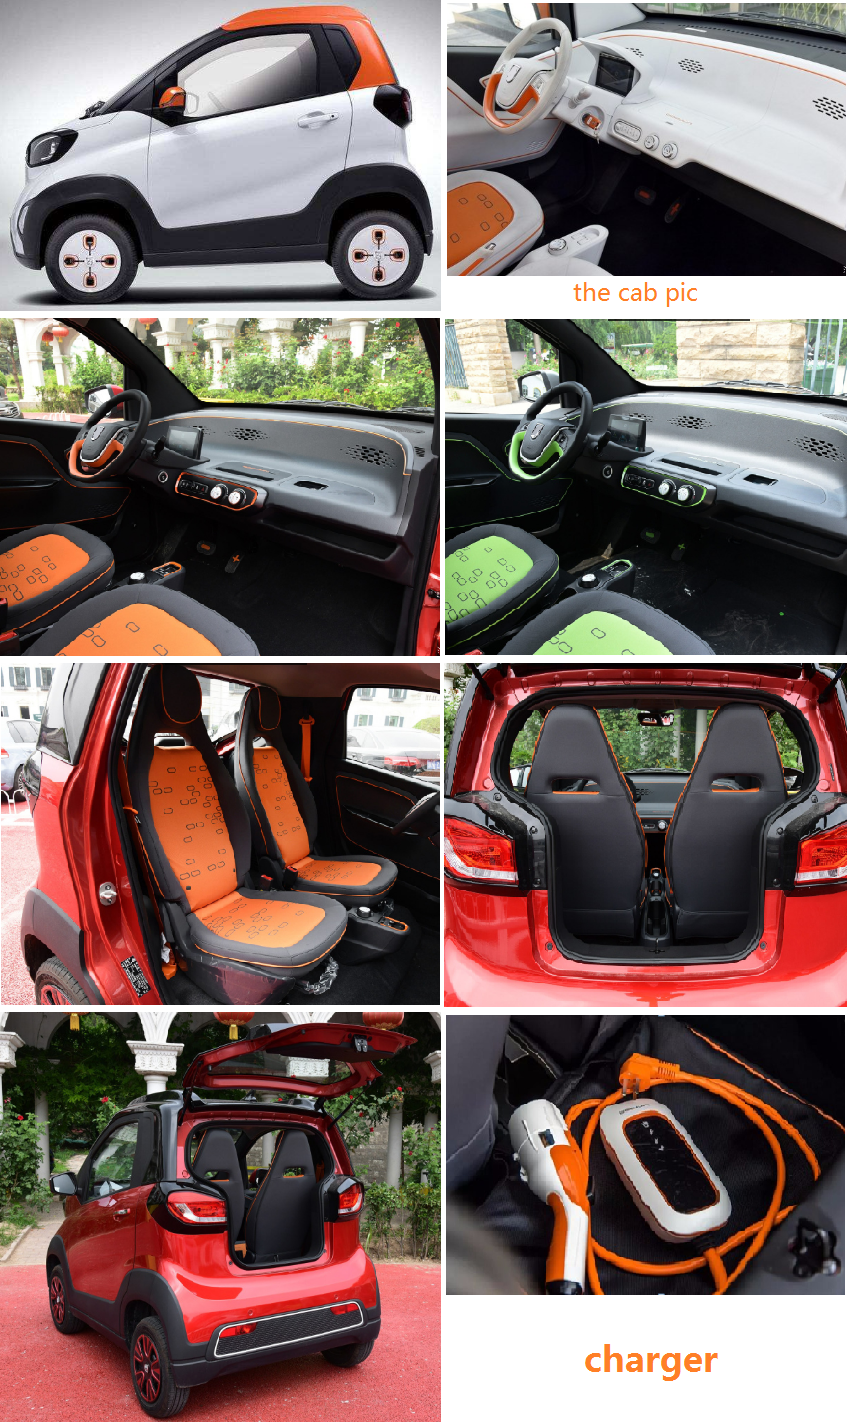 New 2 doors 2 seats 100km/h high speed lithium battery cute electric mini car adult electric scooter